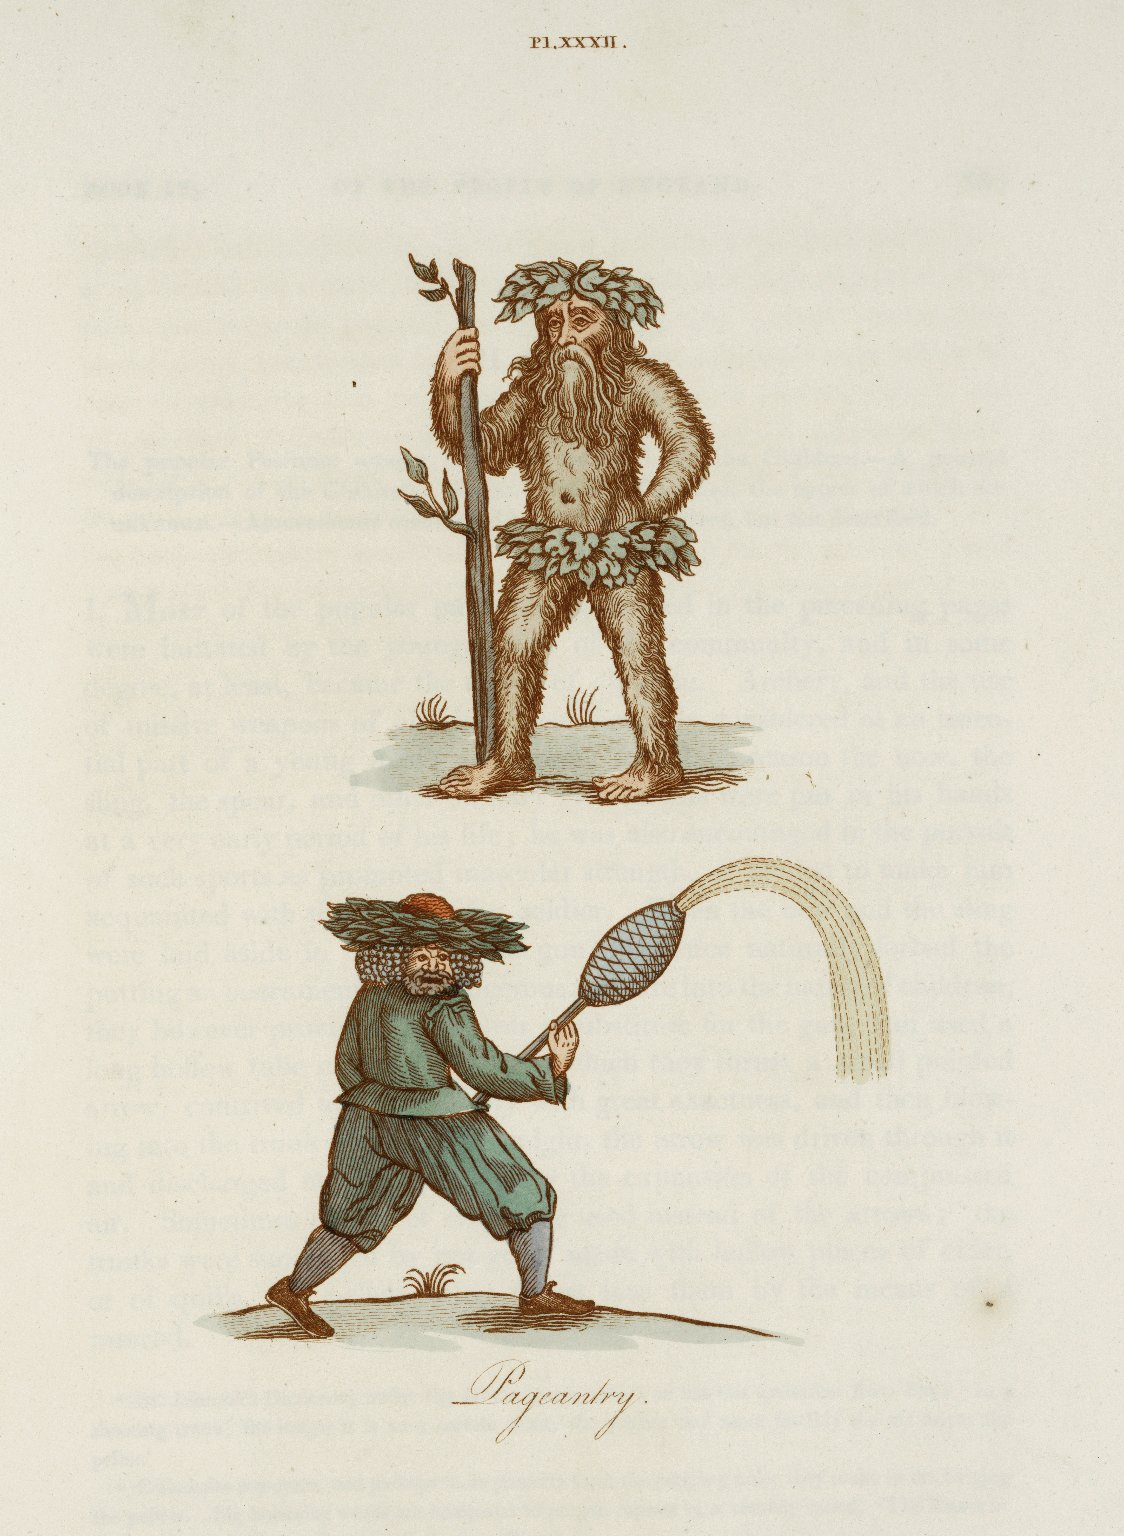 Glig-gamena angel-deod : or the sports and pastimes of the people of England...